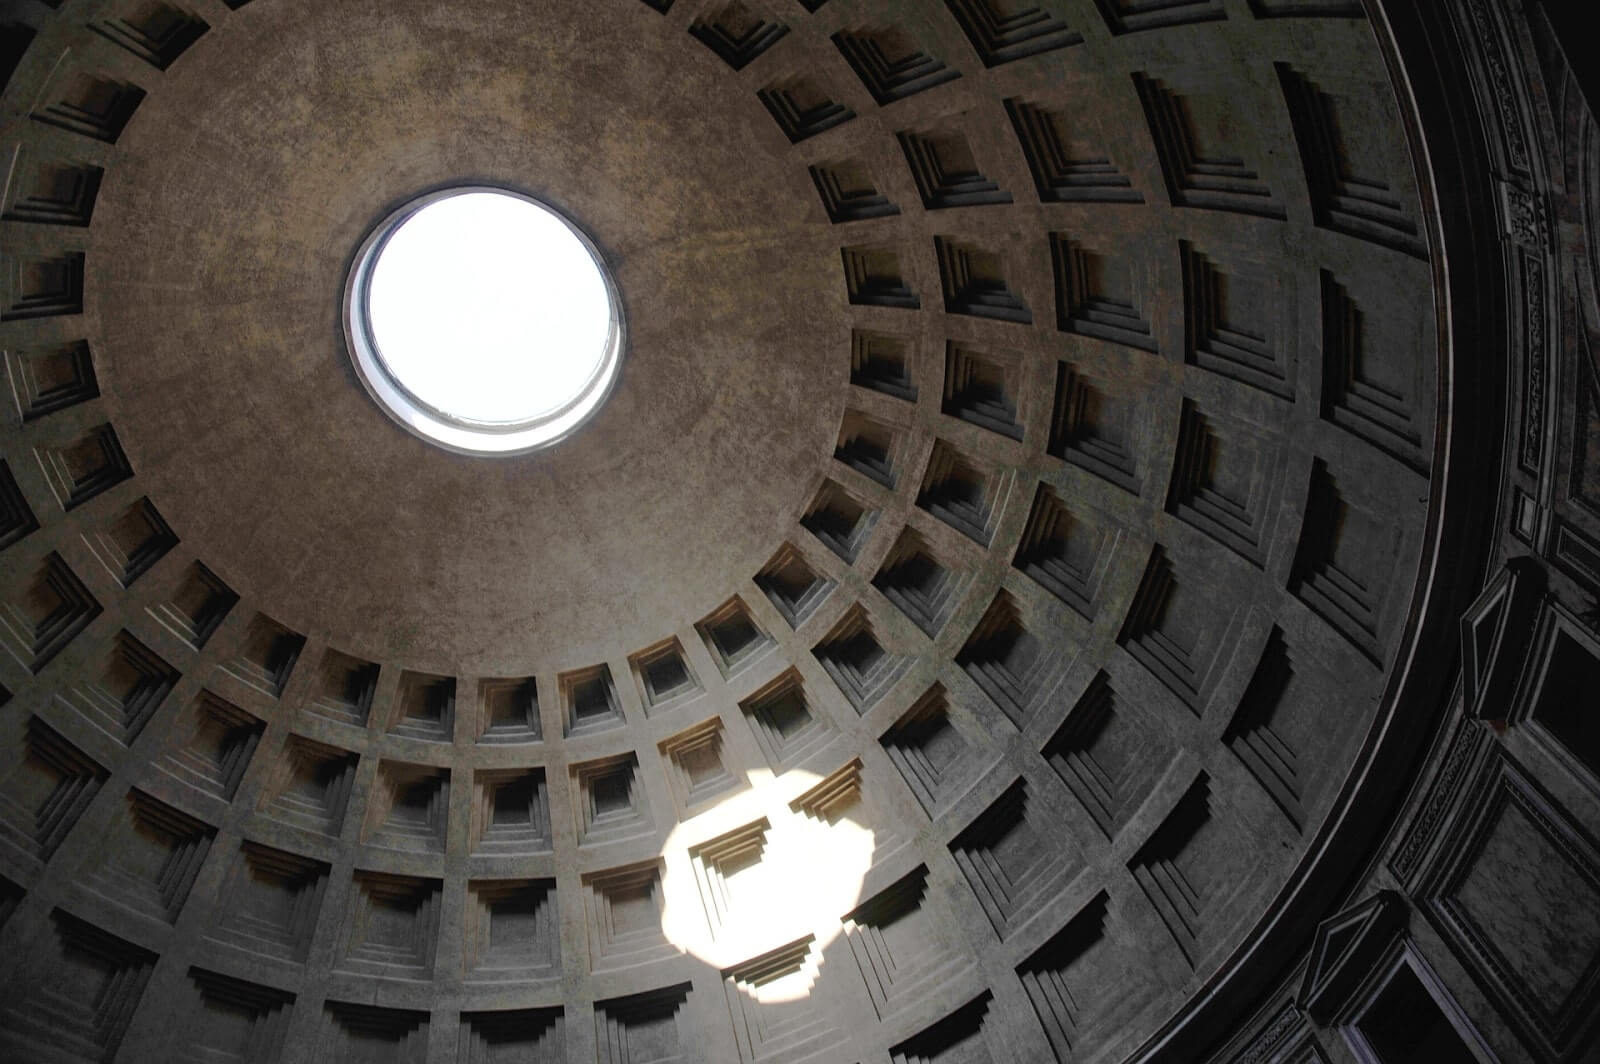 pantheon-dome-ancient-rome.jpg